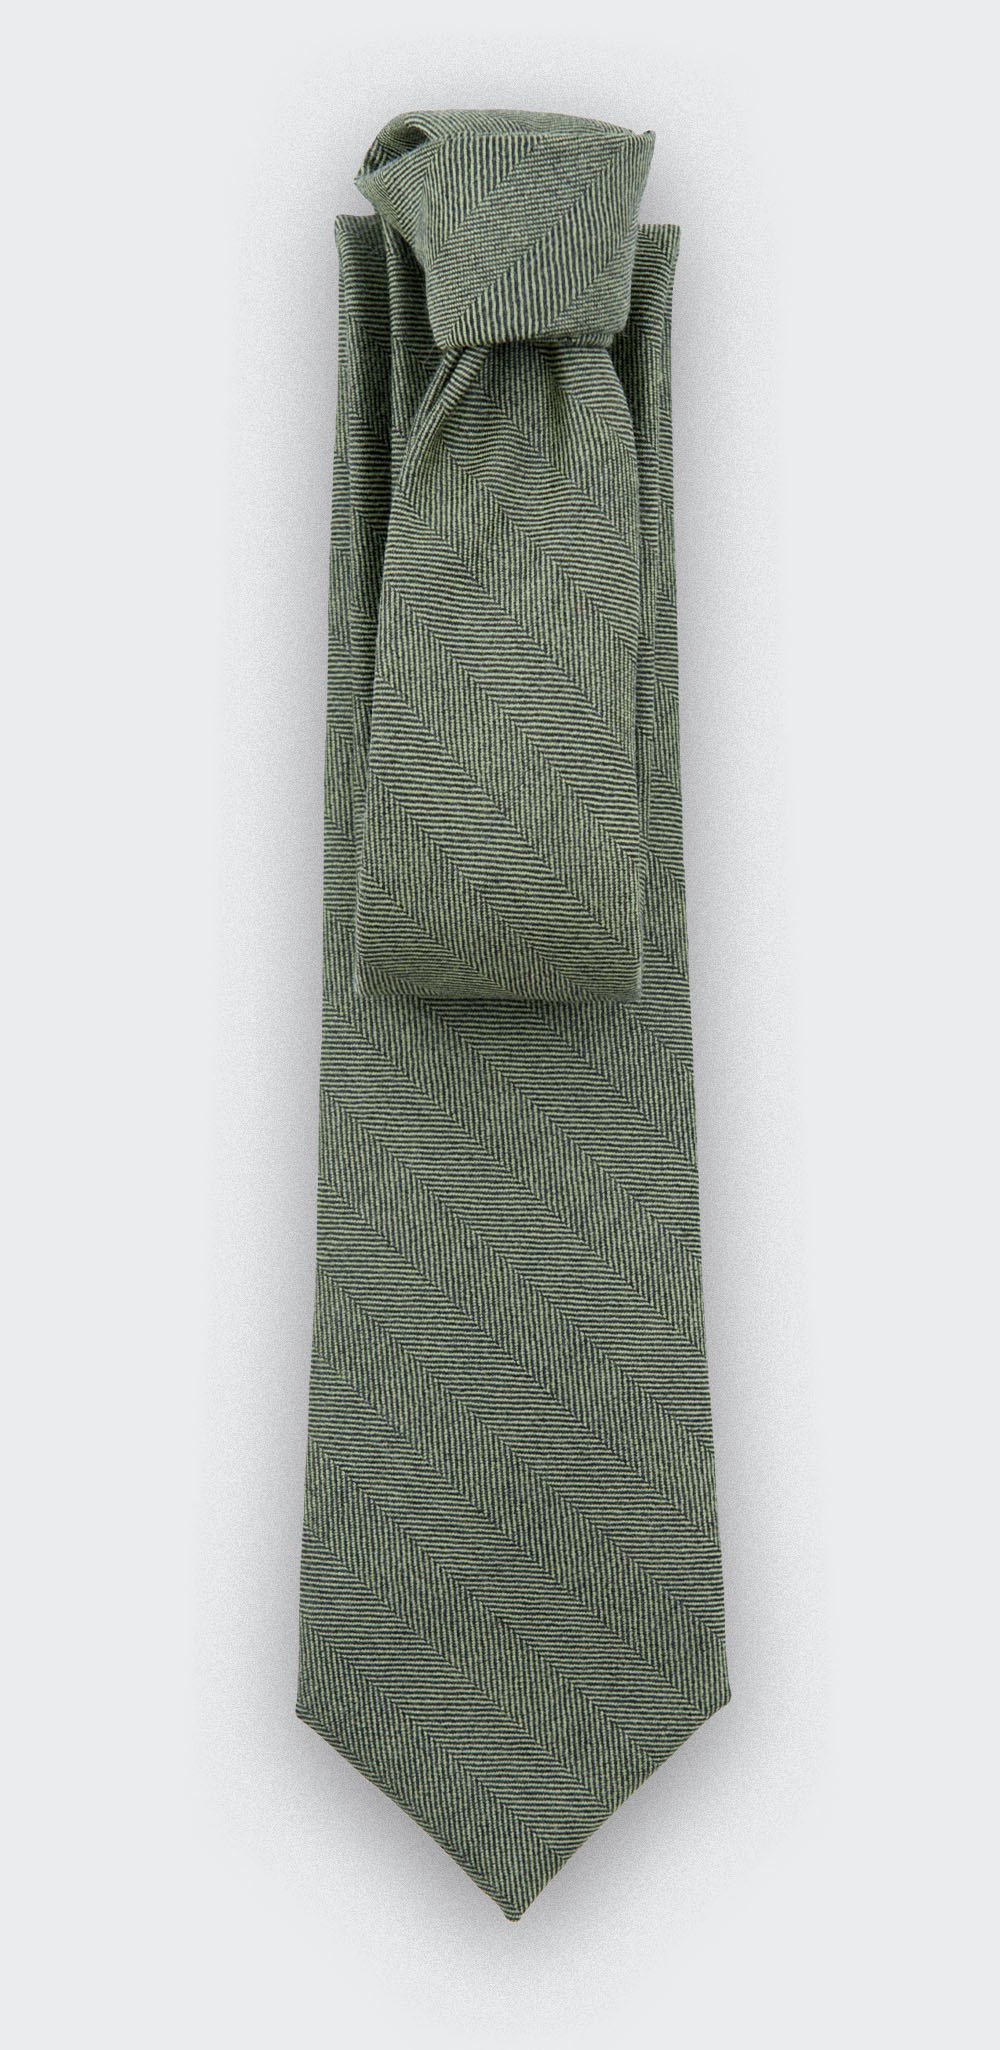 CINABRE - Tie - Chevron Vert - made in France